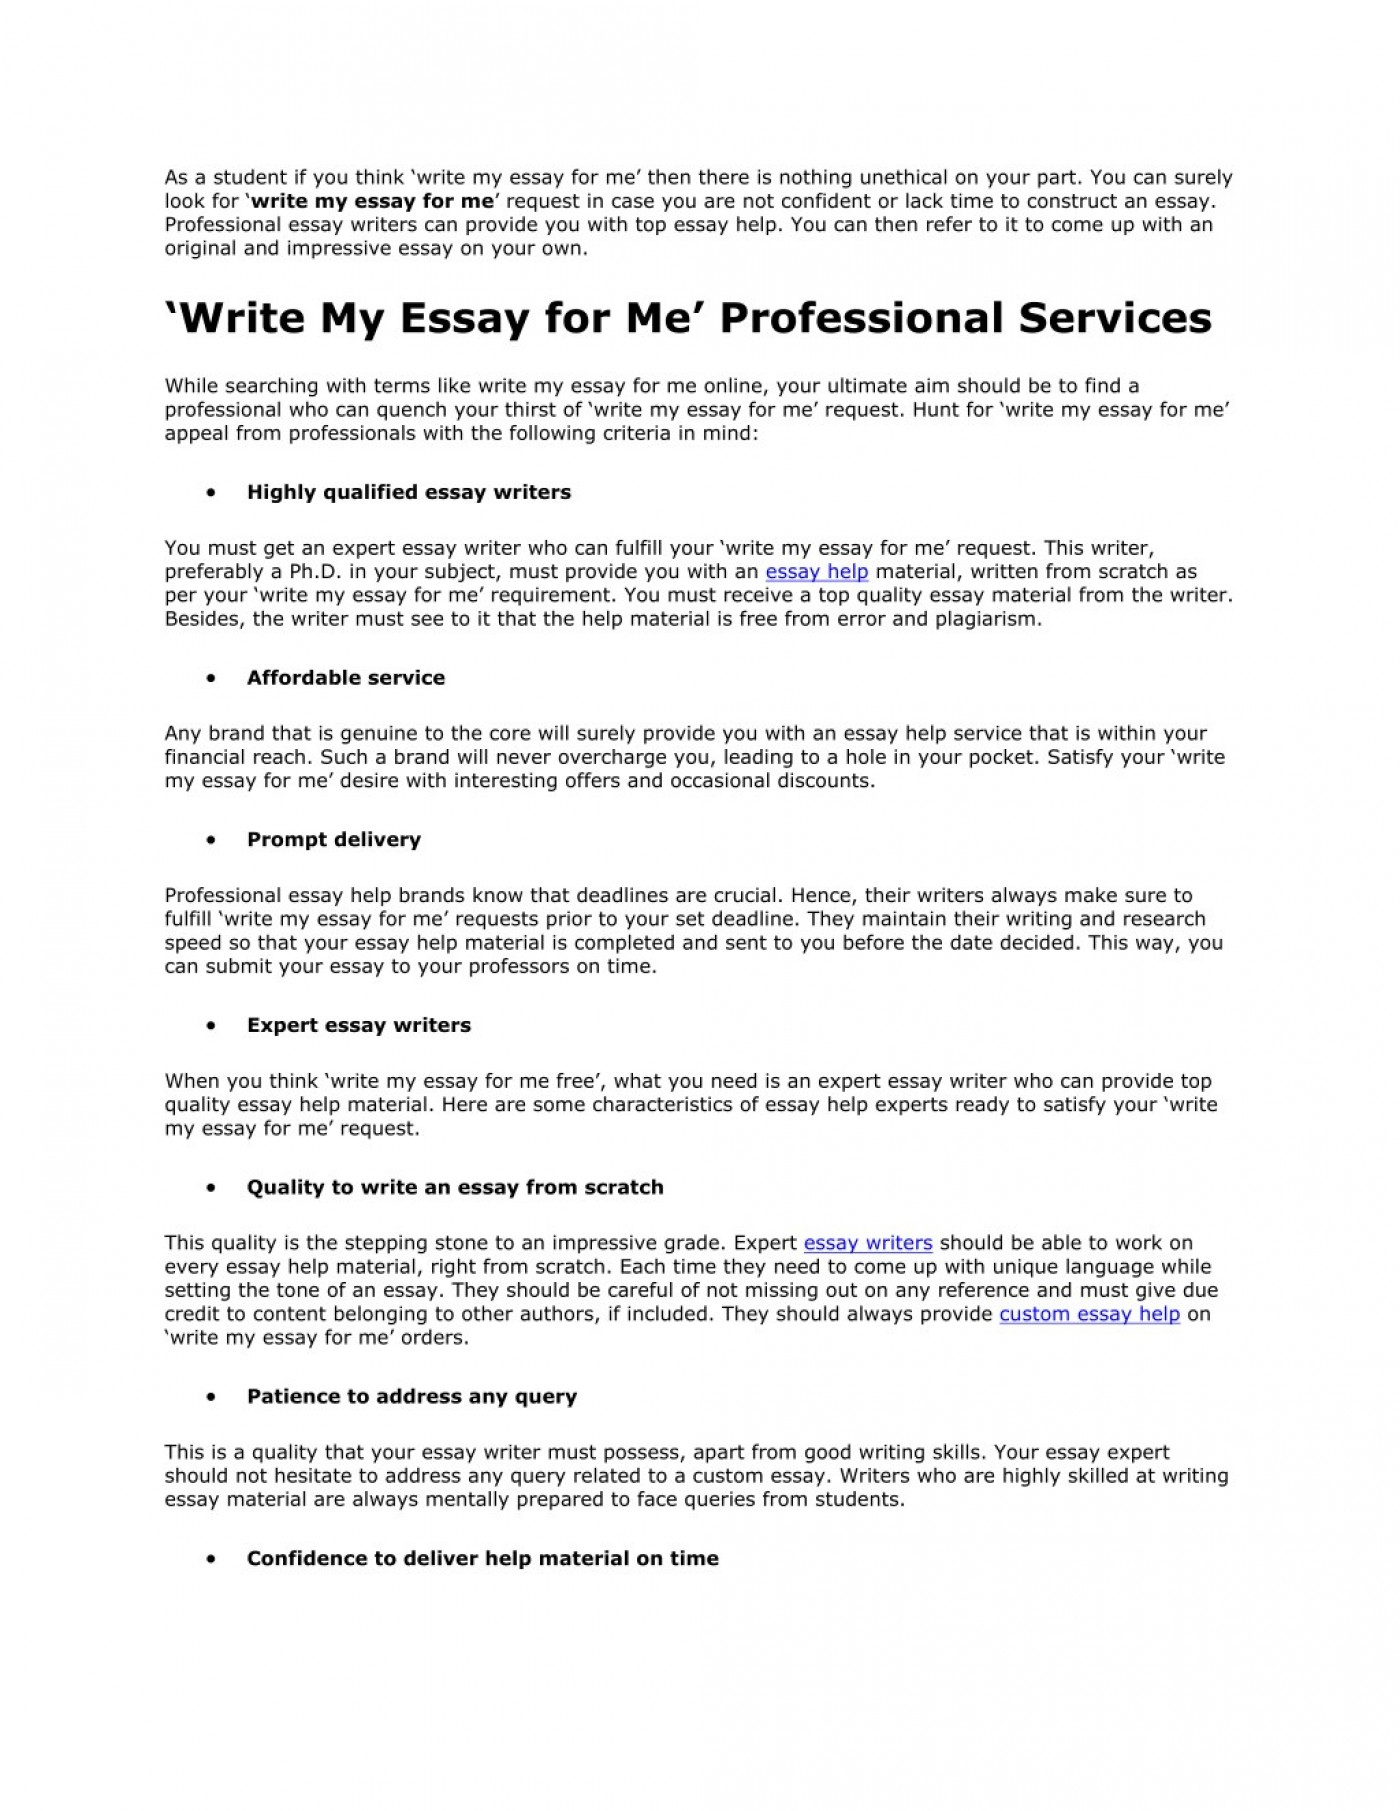 017 Write My Essay For Me Example As Student If You Think Surprising Reviews Canada Free Uk 1400